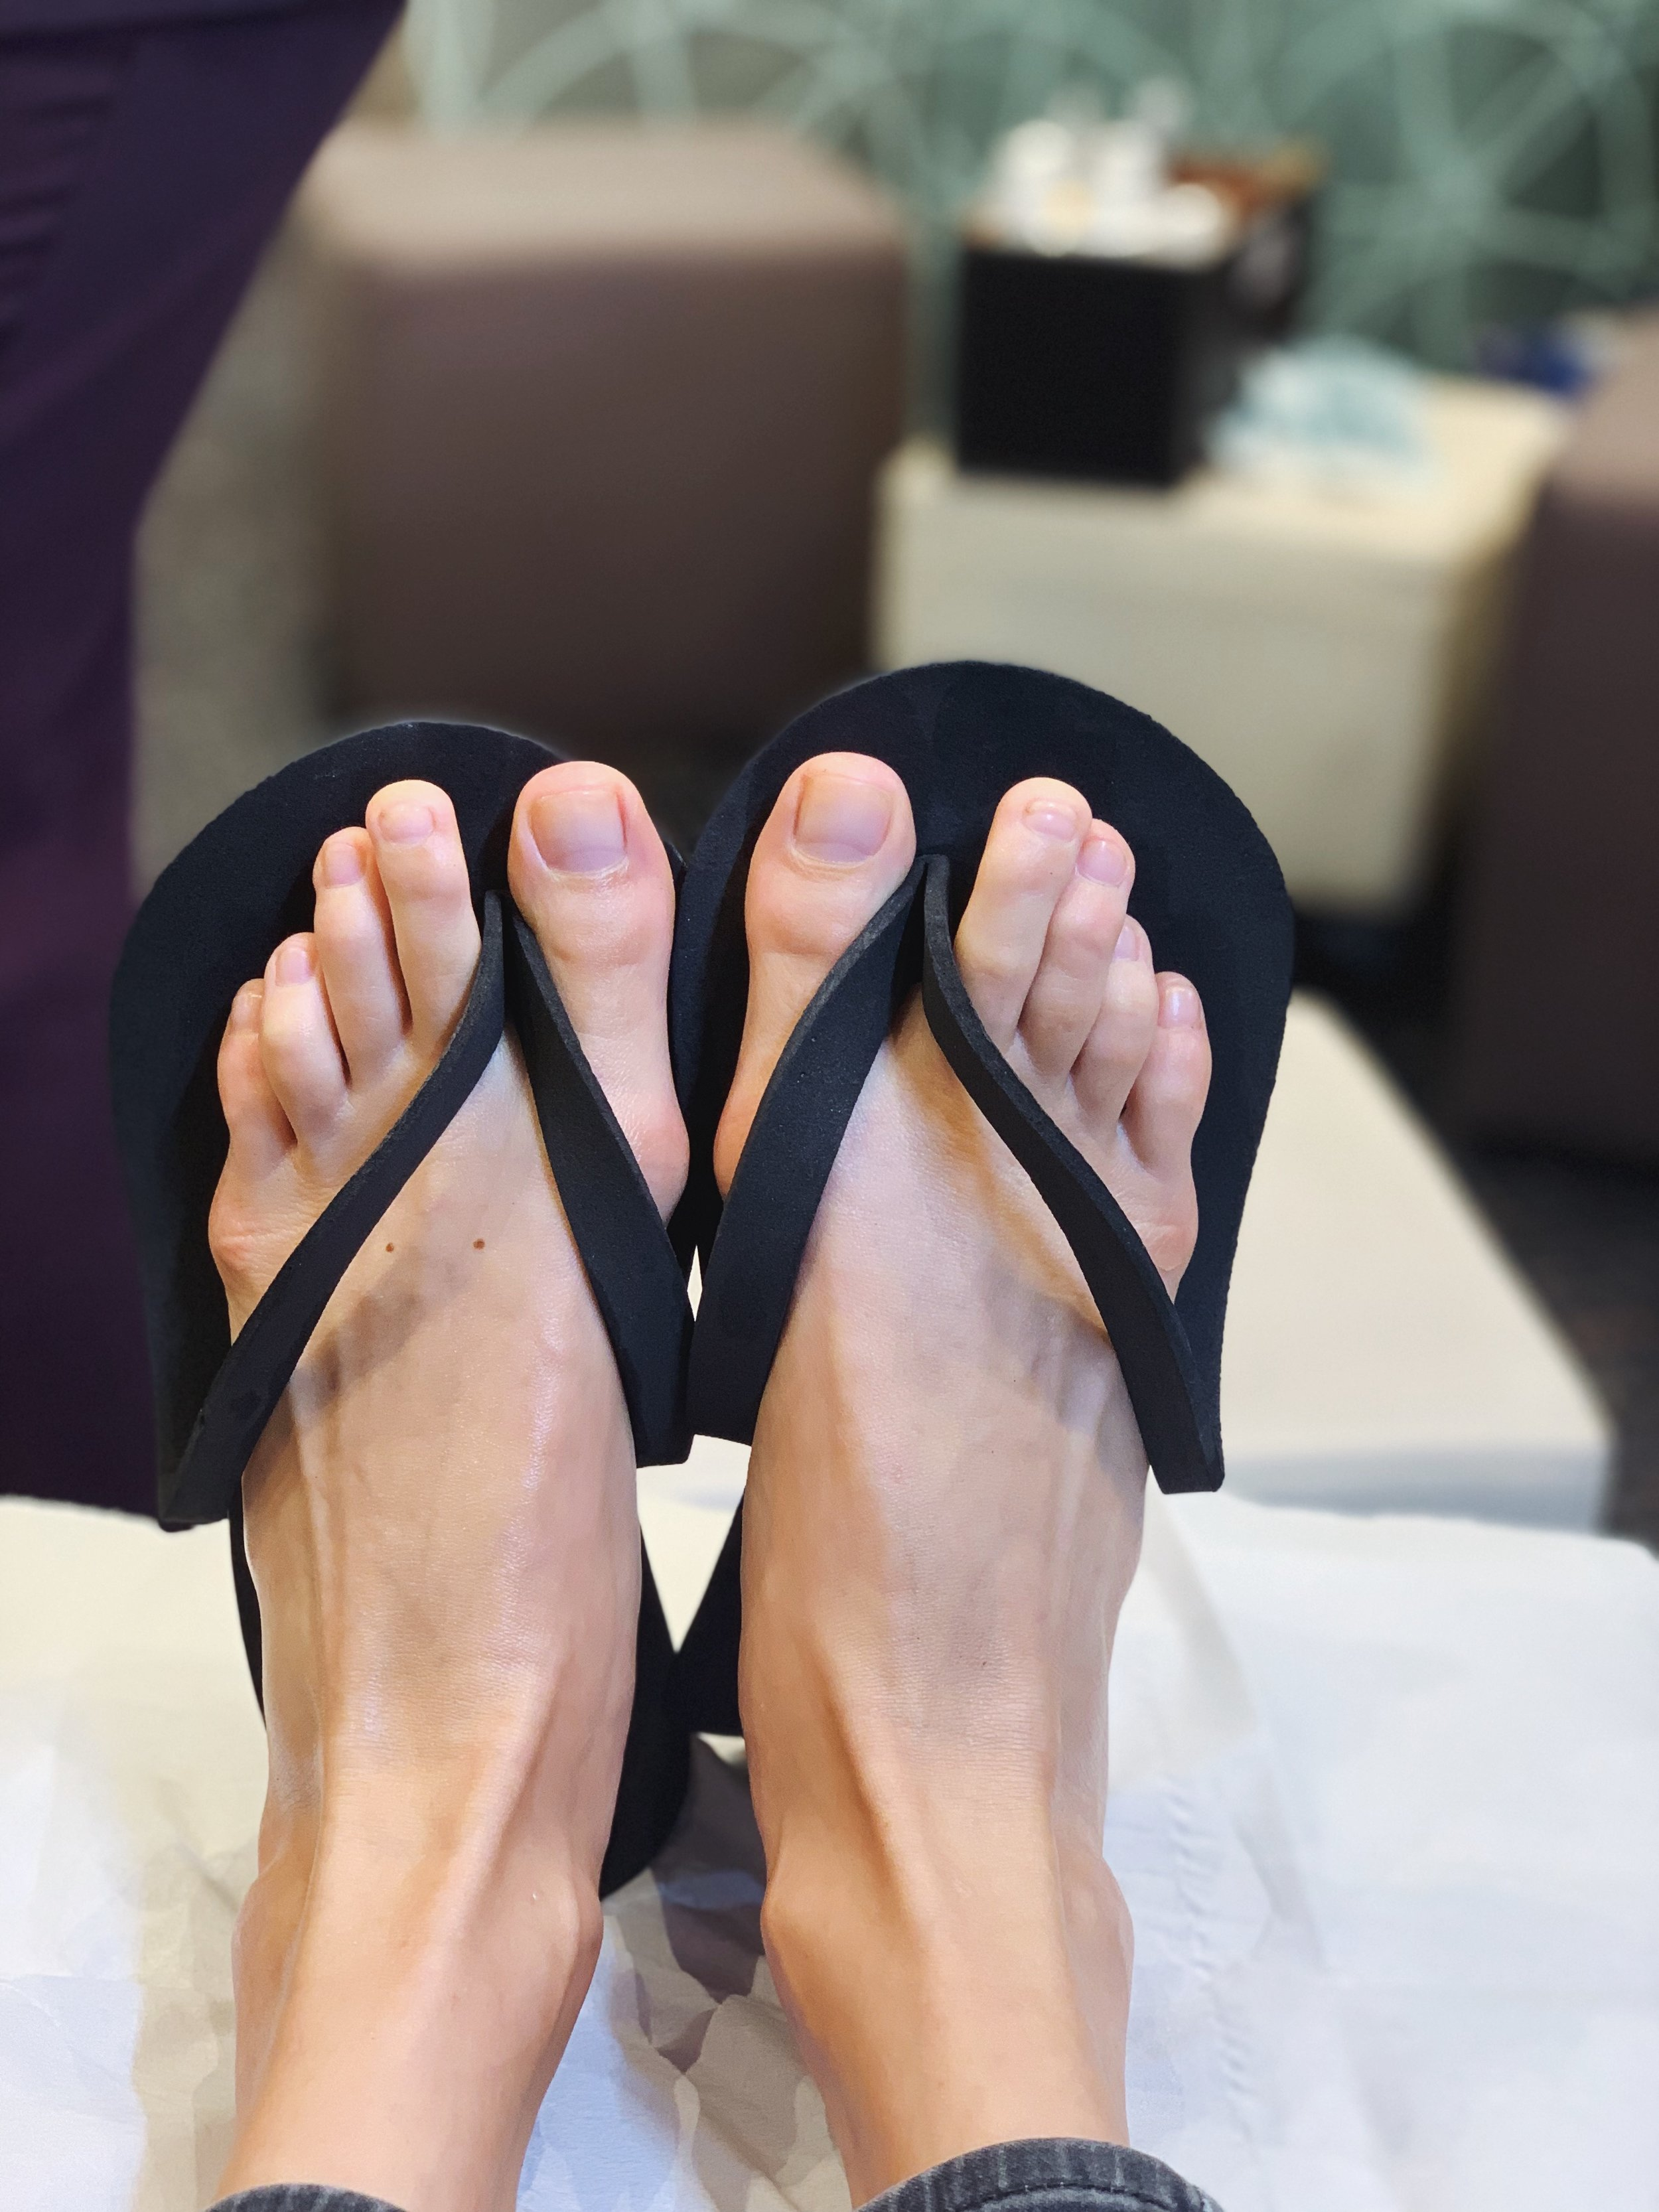 Annabell's super smooth feet and shiny toe nails after her Medical Pedicure. Will be back for sure!